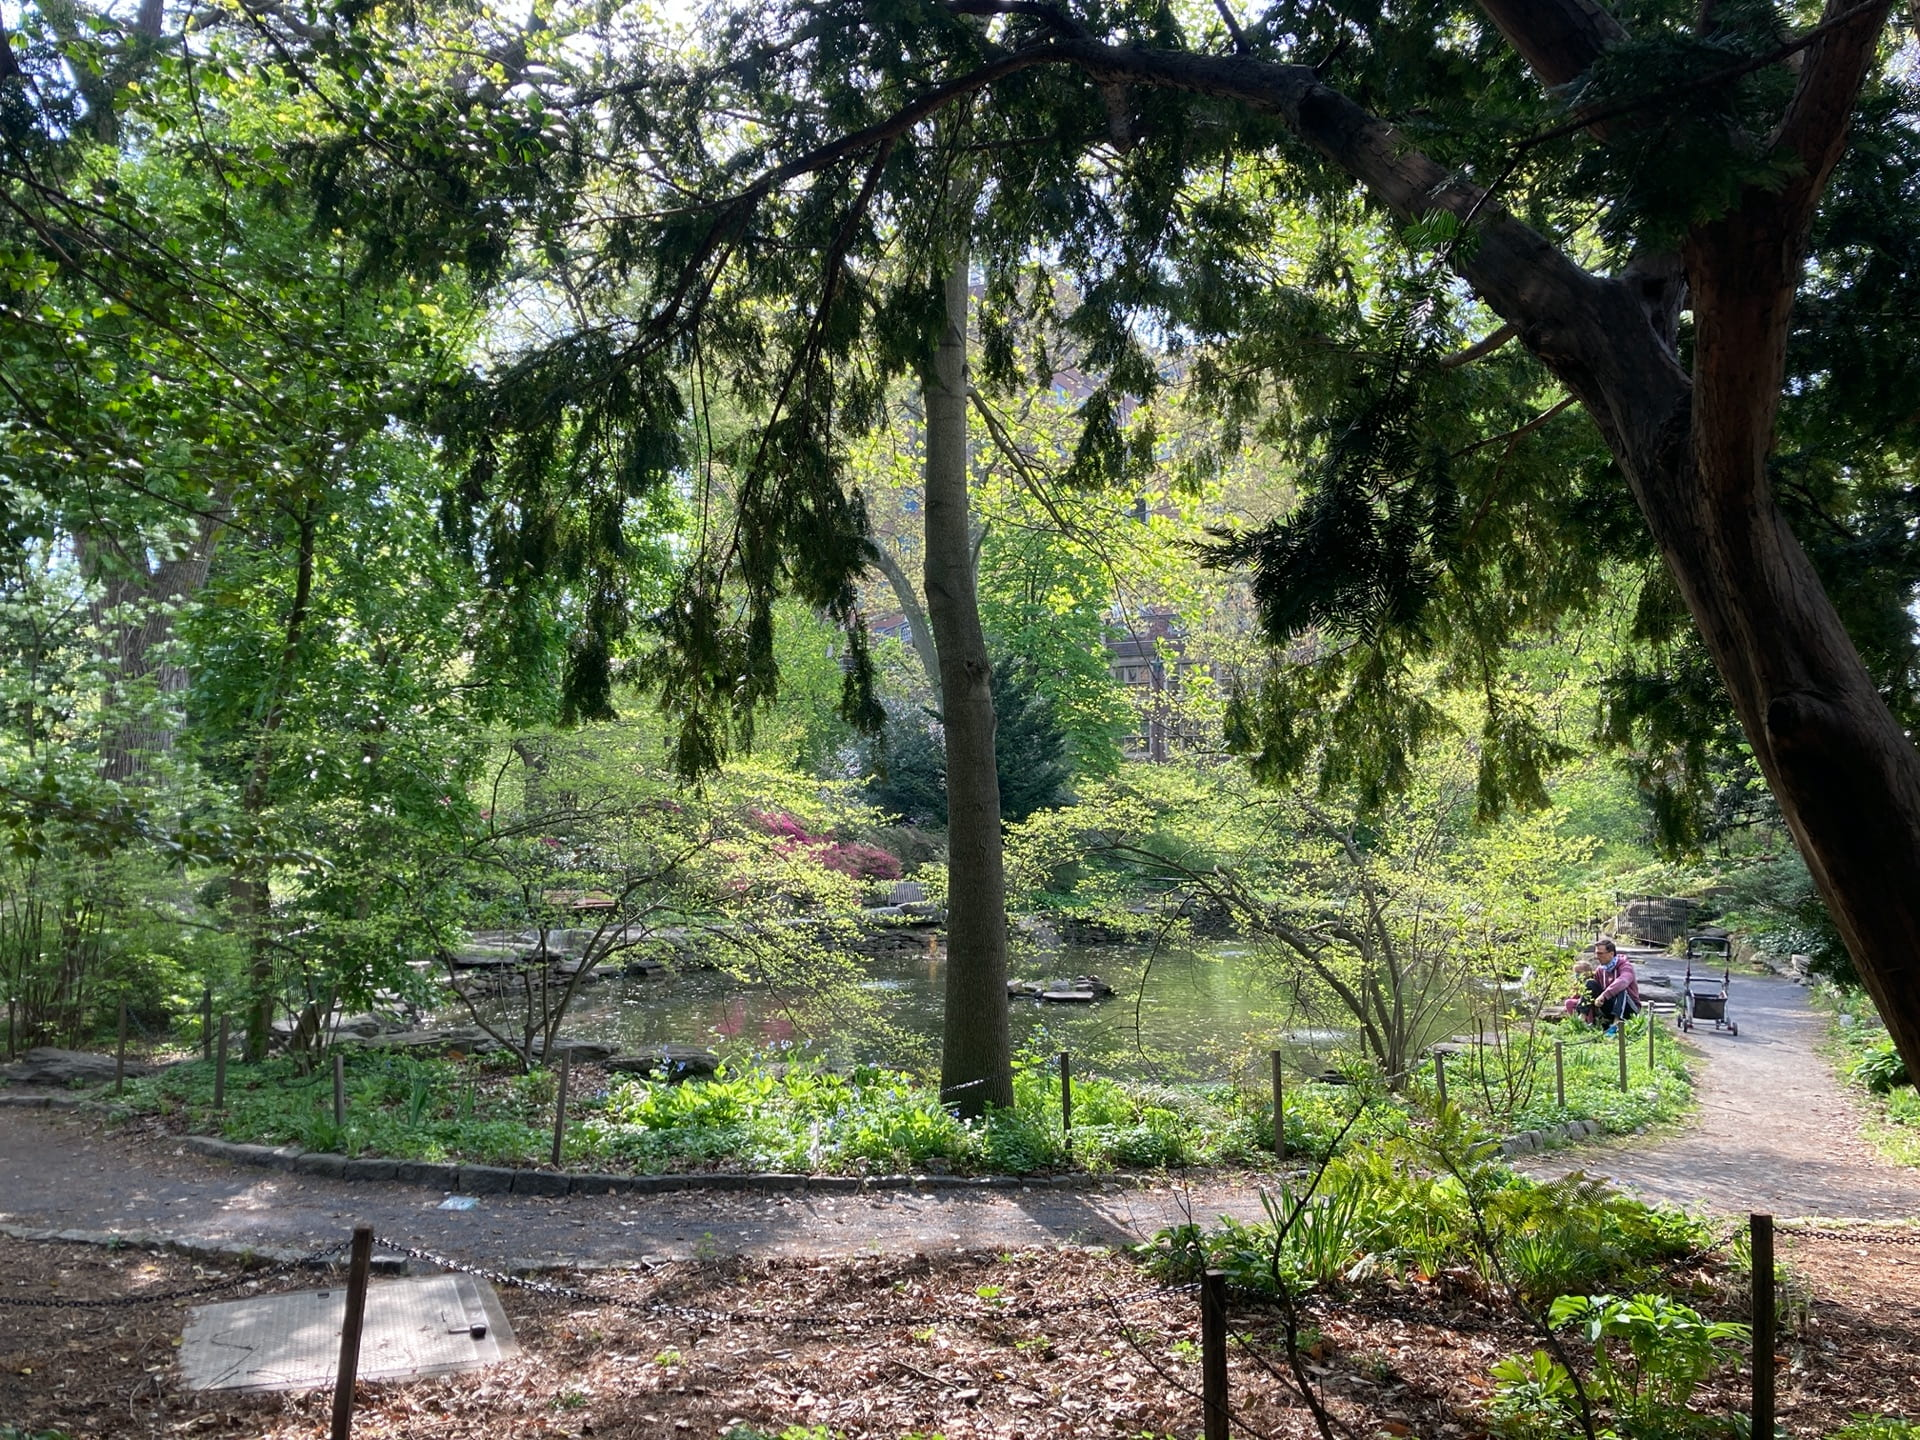 A view of the BioPond from under the shade of Taxus baccata.